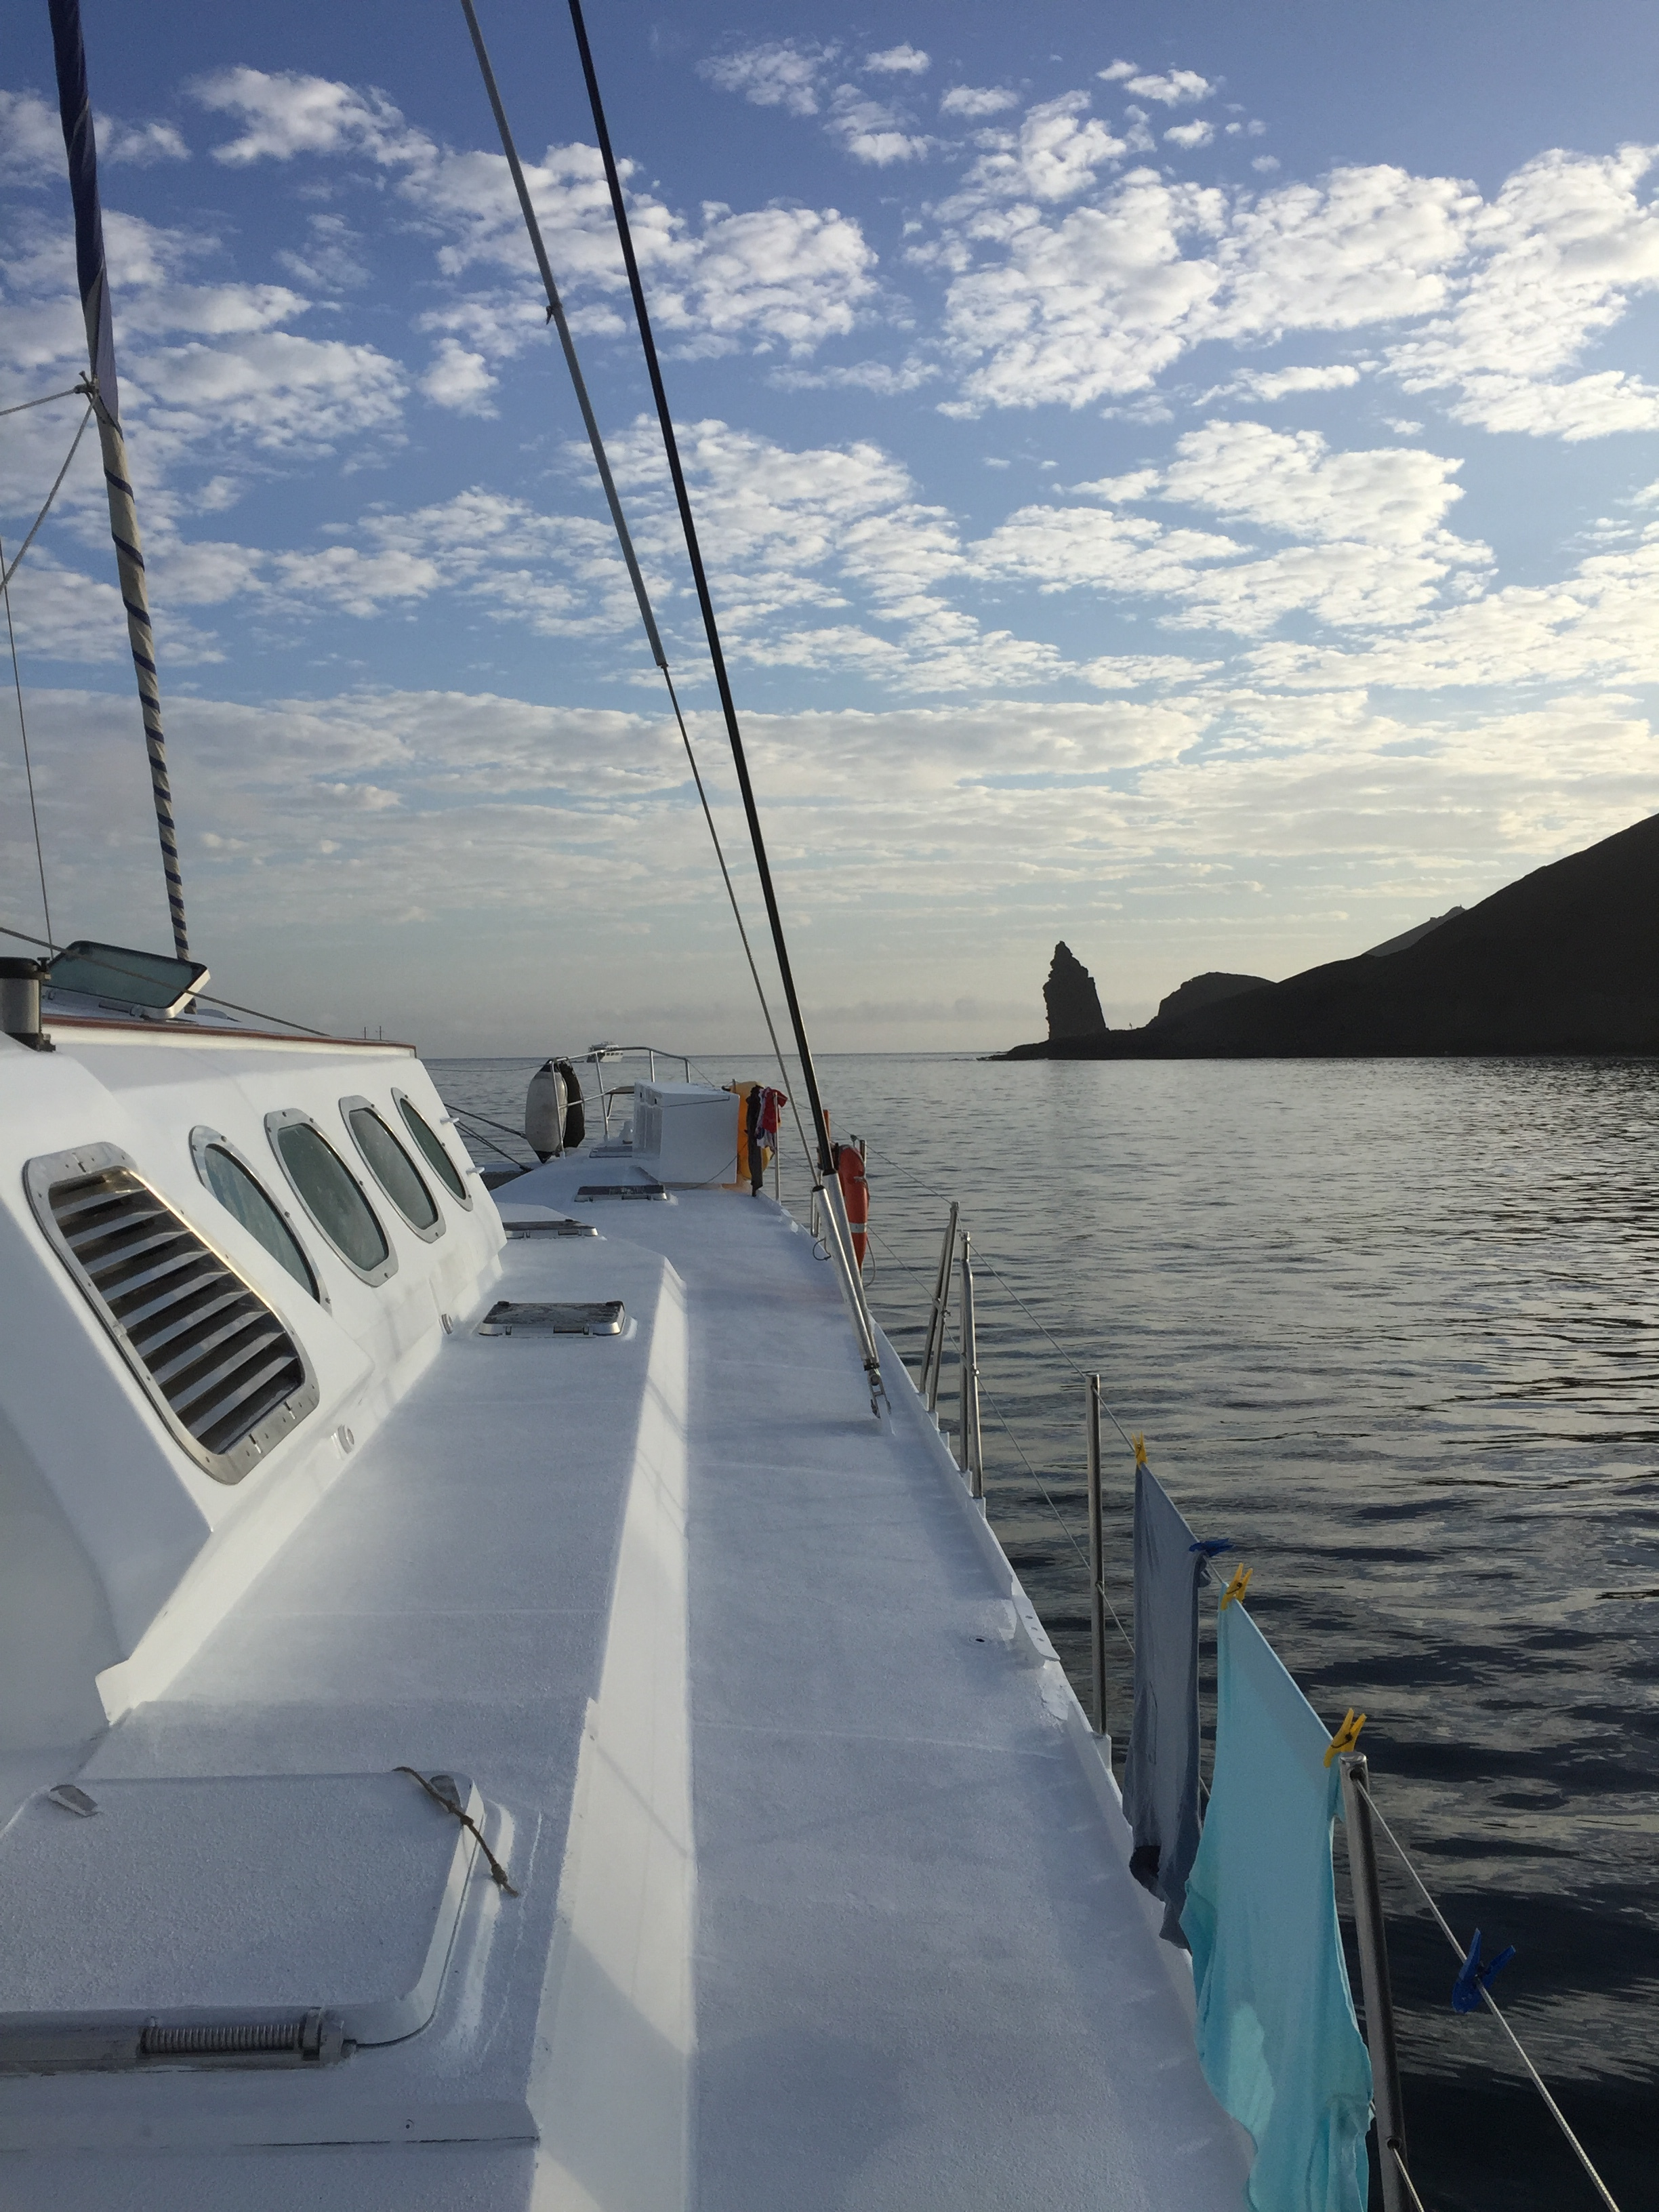 Approaching an eroded volcanic rock on the coast of Santiago Island.